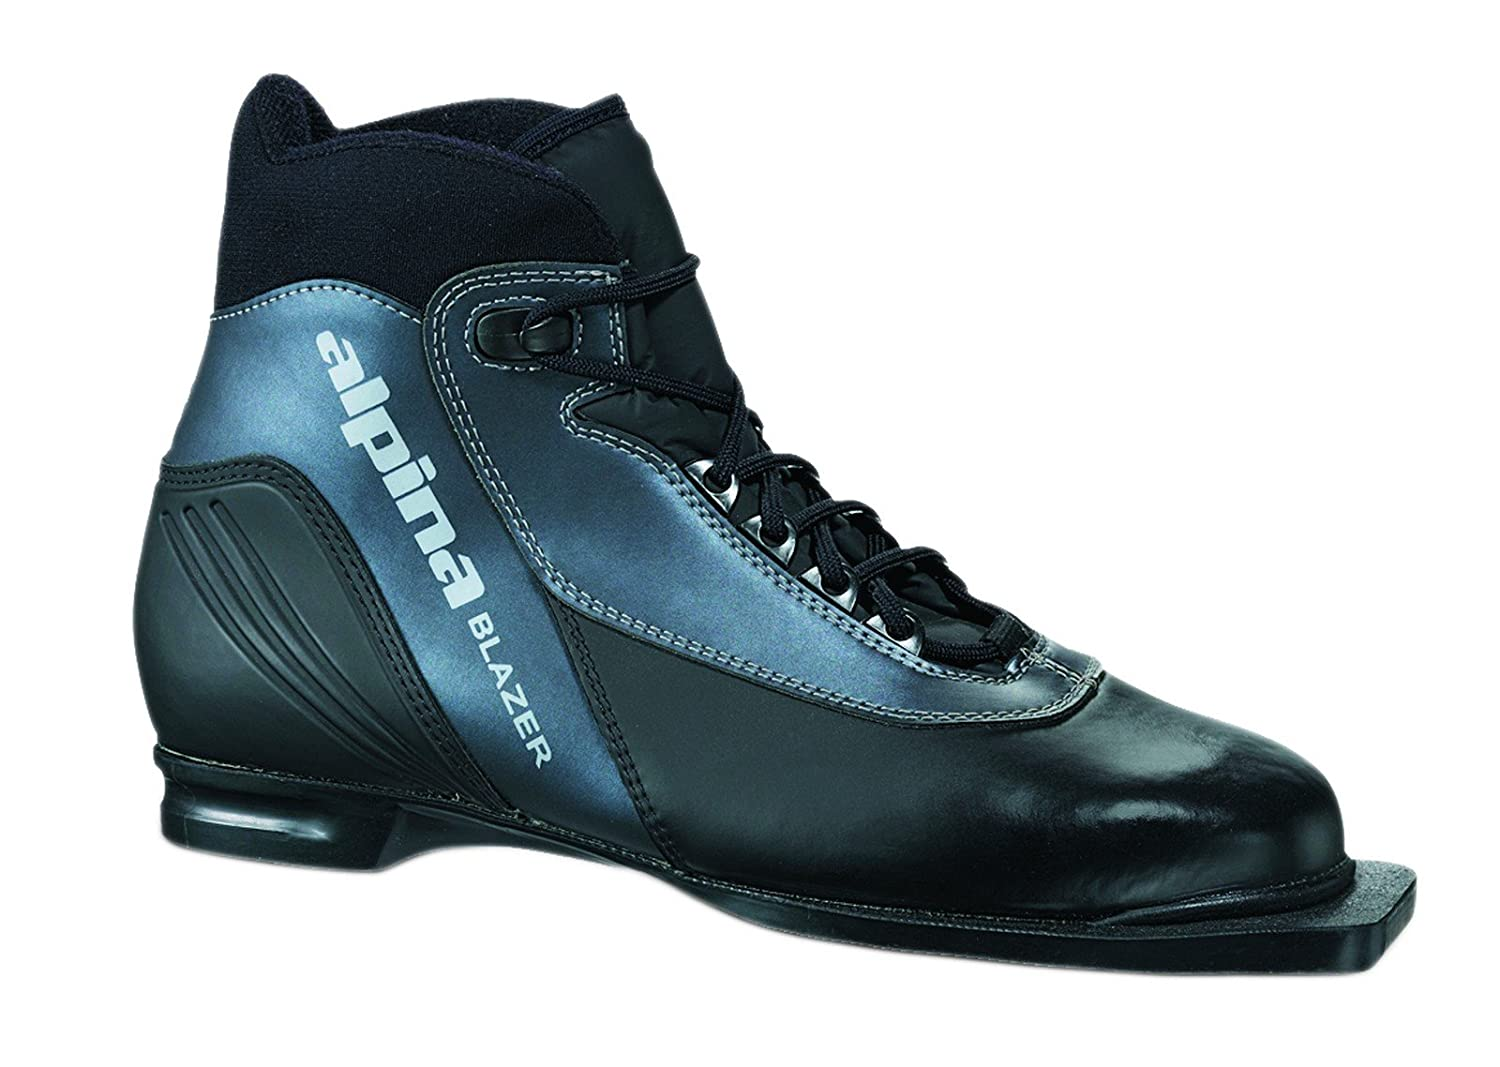 Women's Wide Cross Country Ski Boots 108